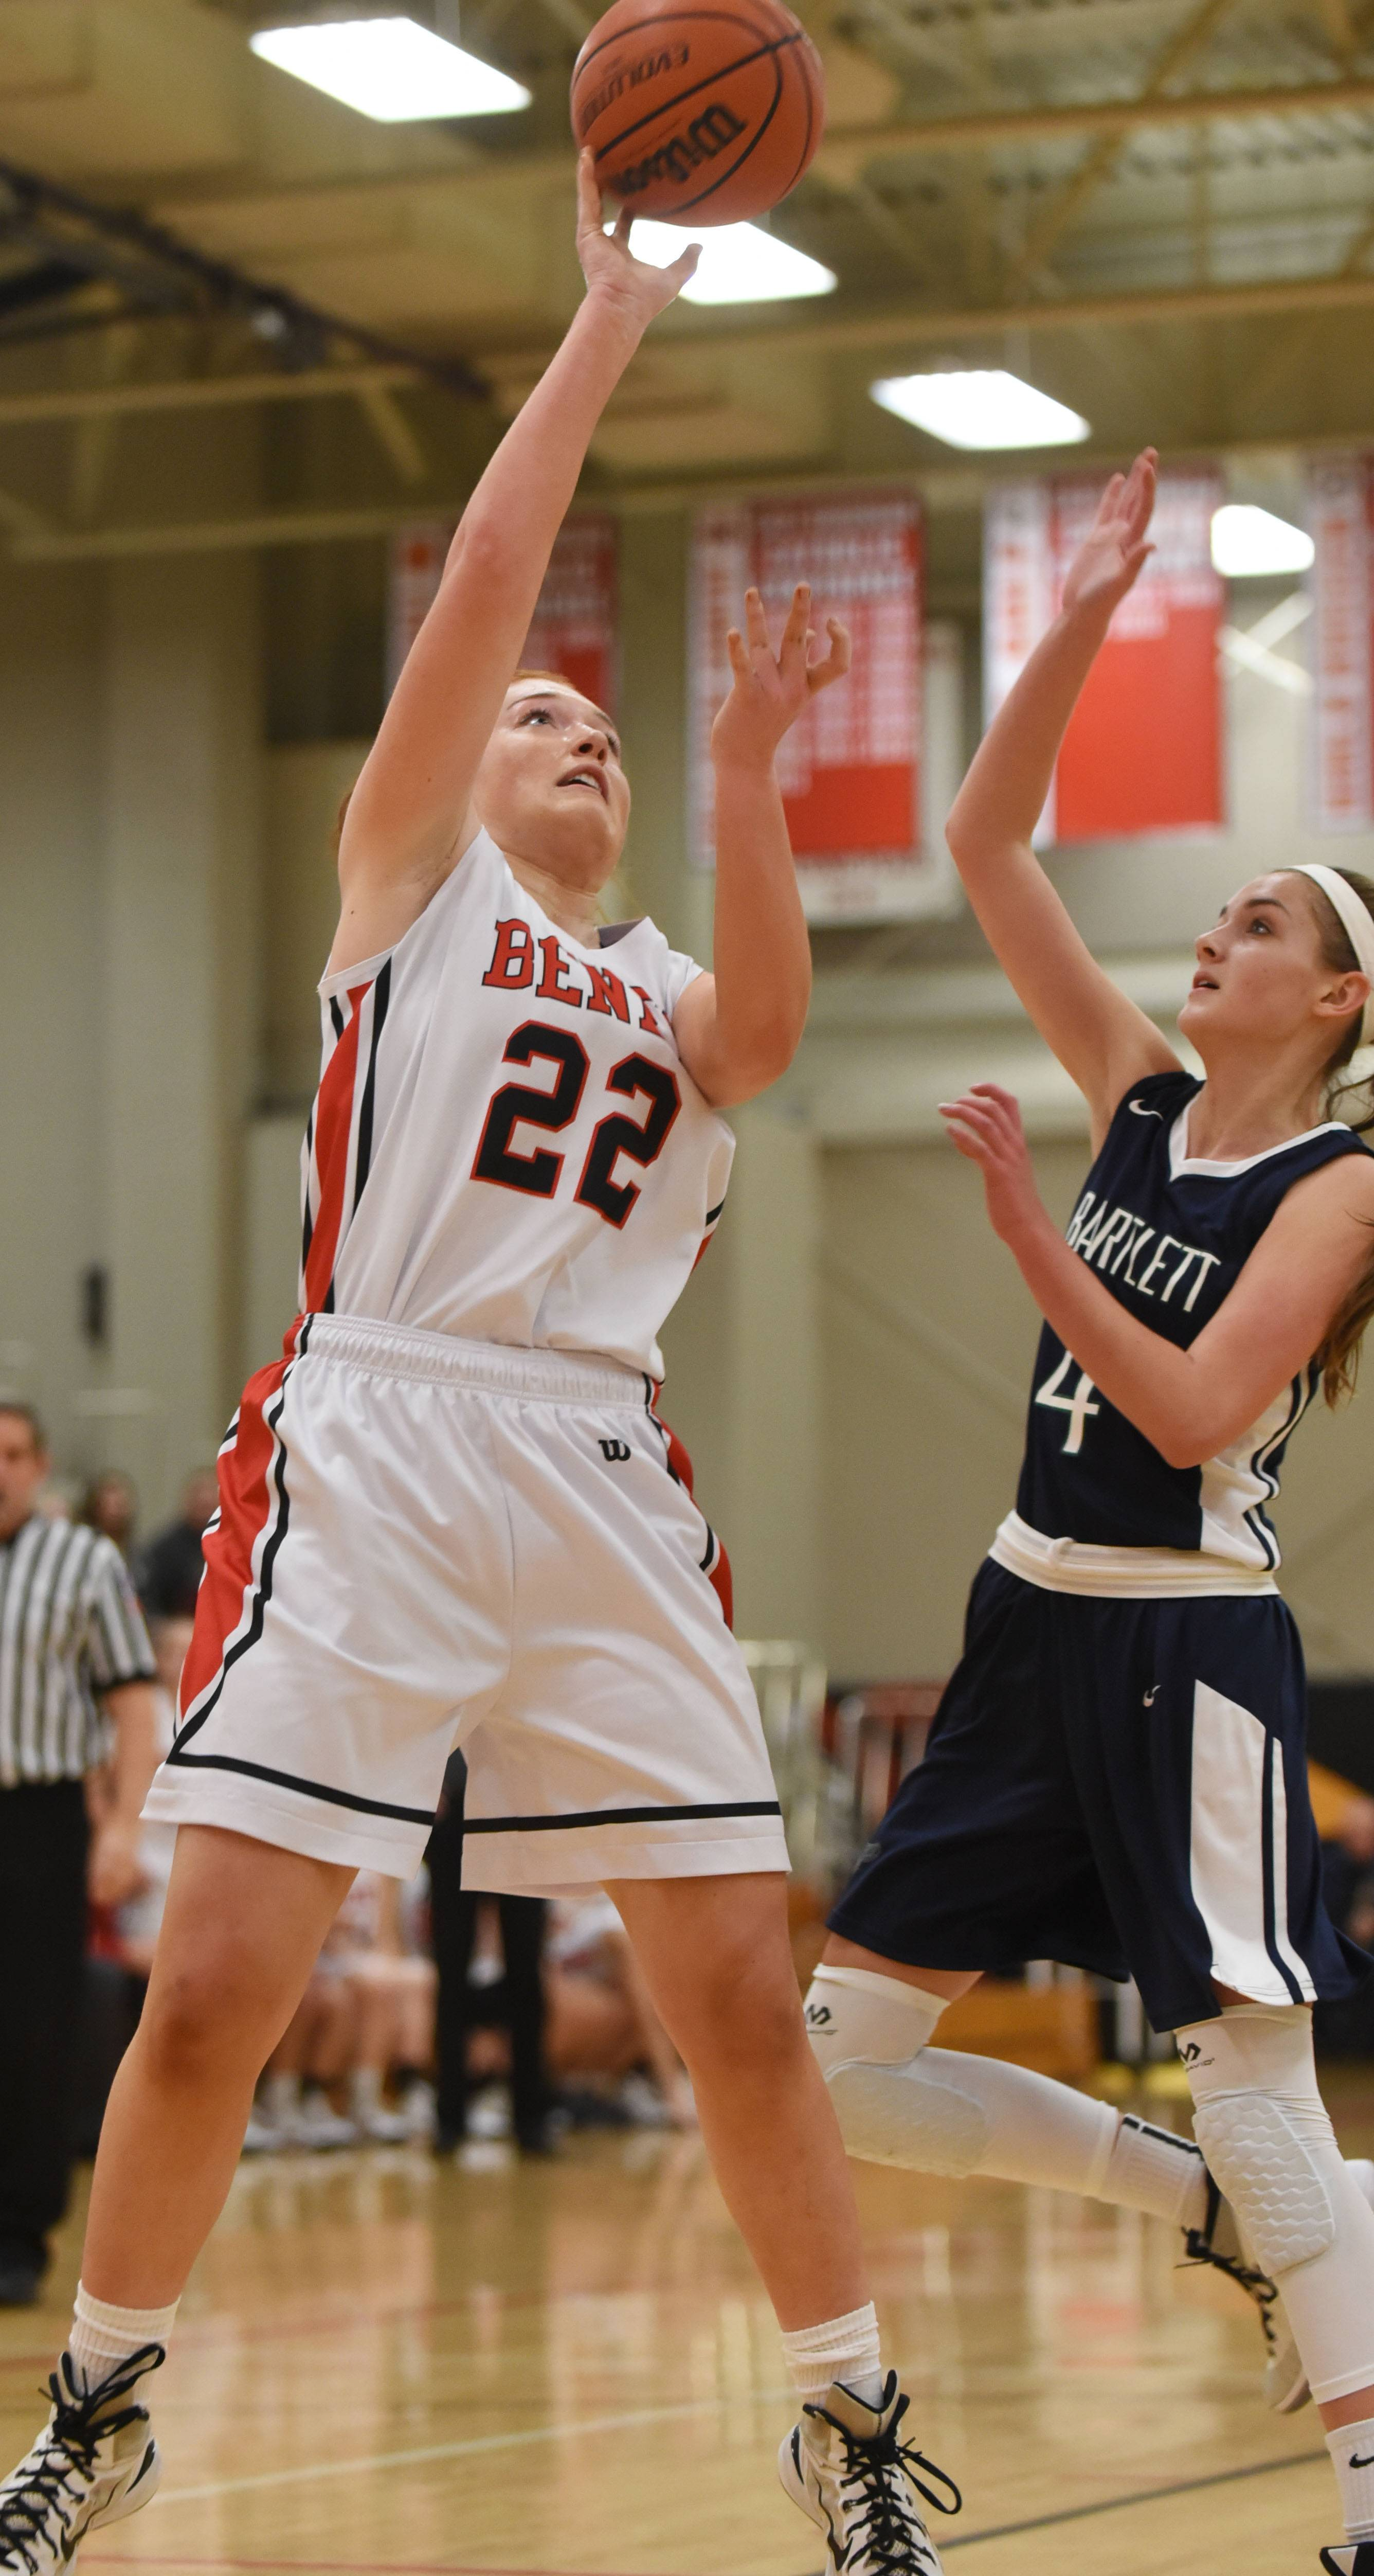 Kendal Schramek of Benet takes a shot while Kayla Hare of Bartlett attempts to block during the Bartlett at Benet girls basketball game Friday in Lisle.